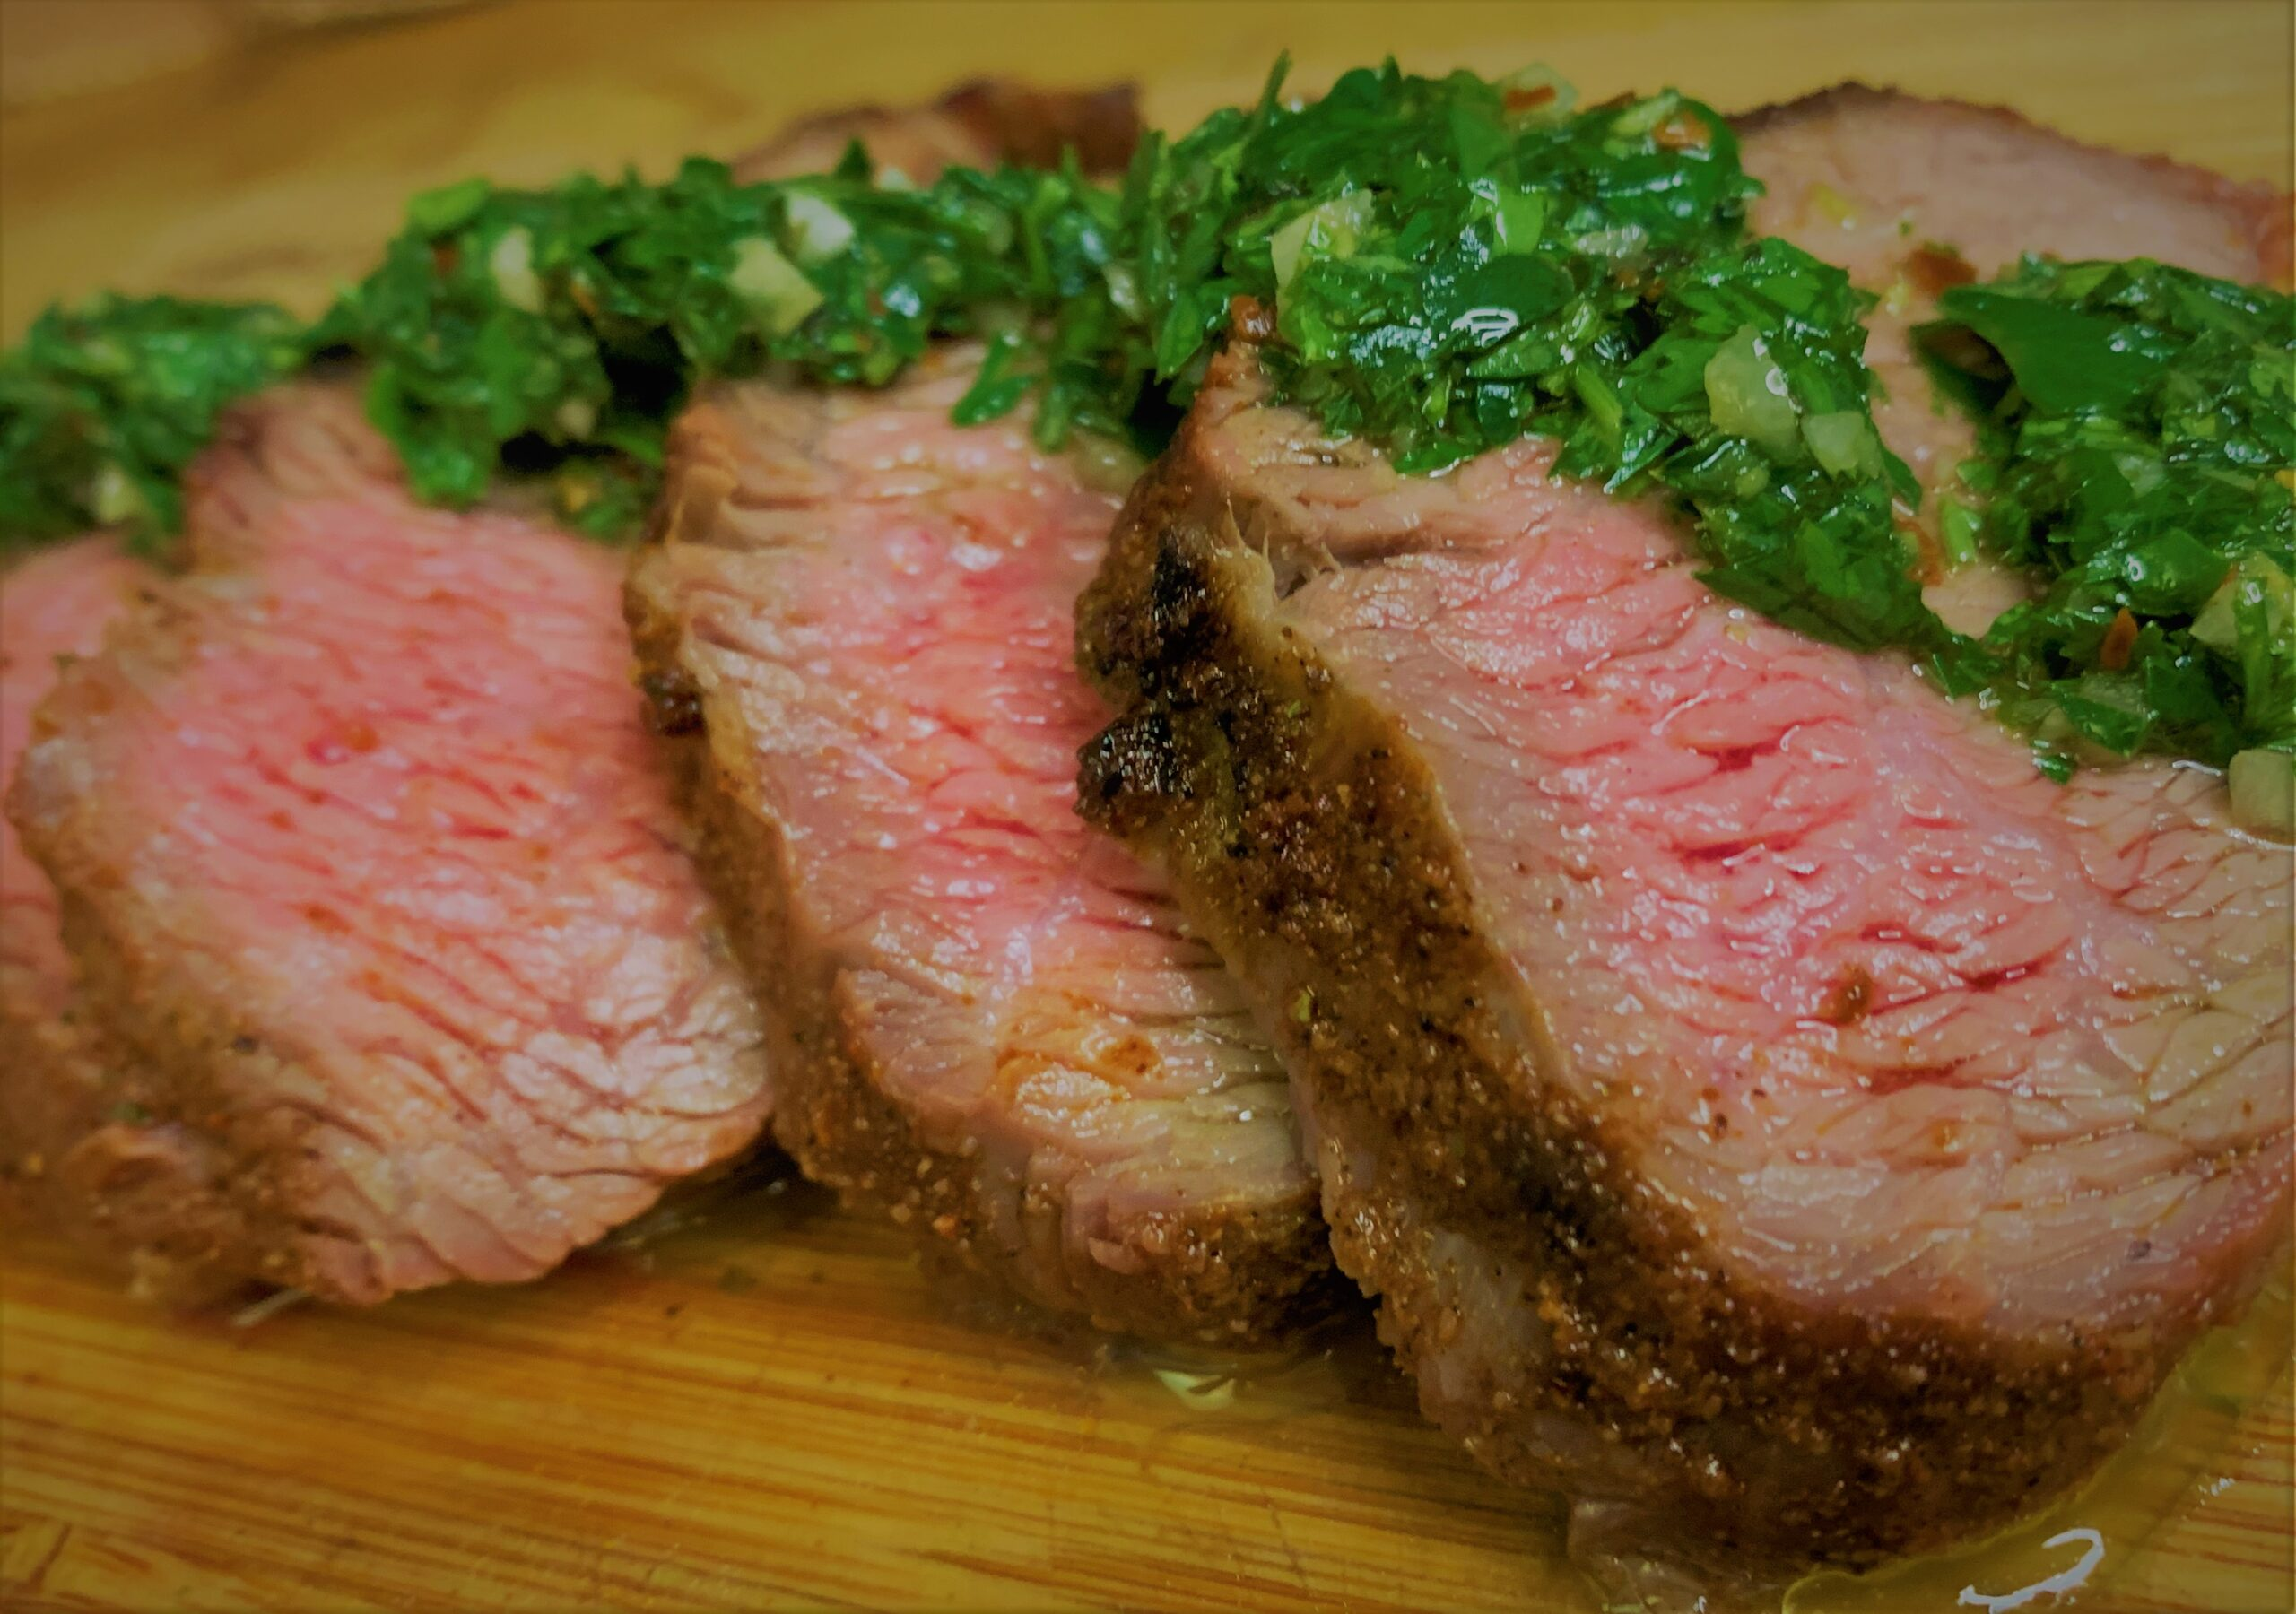 Our completed Santa Maria Style Tri-Tip with Chimichuri